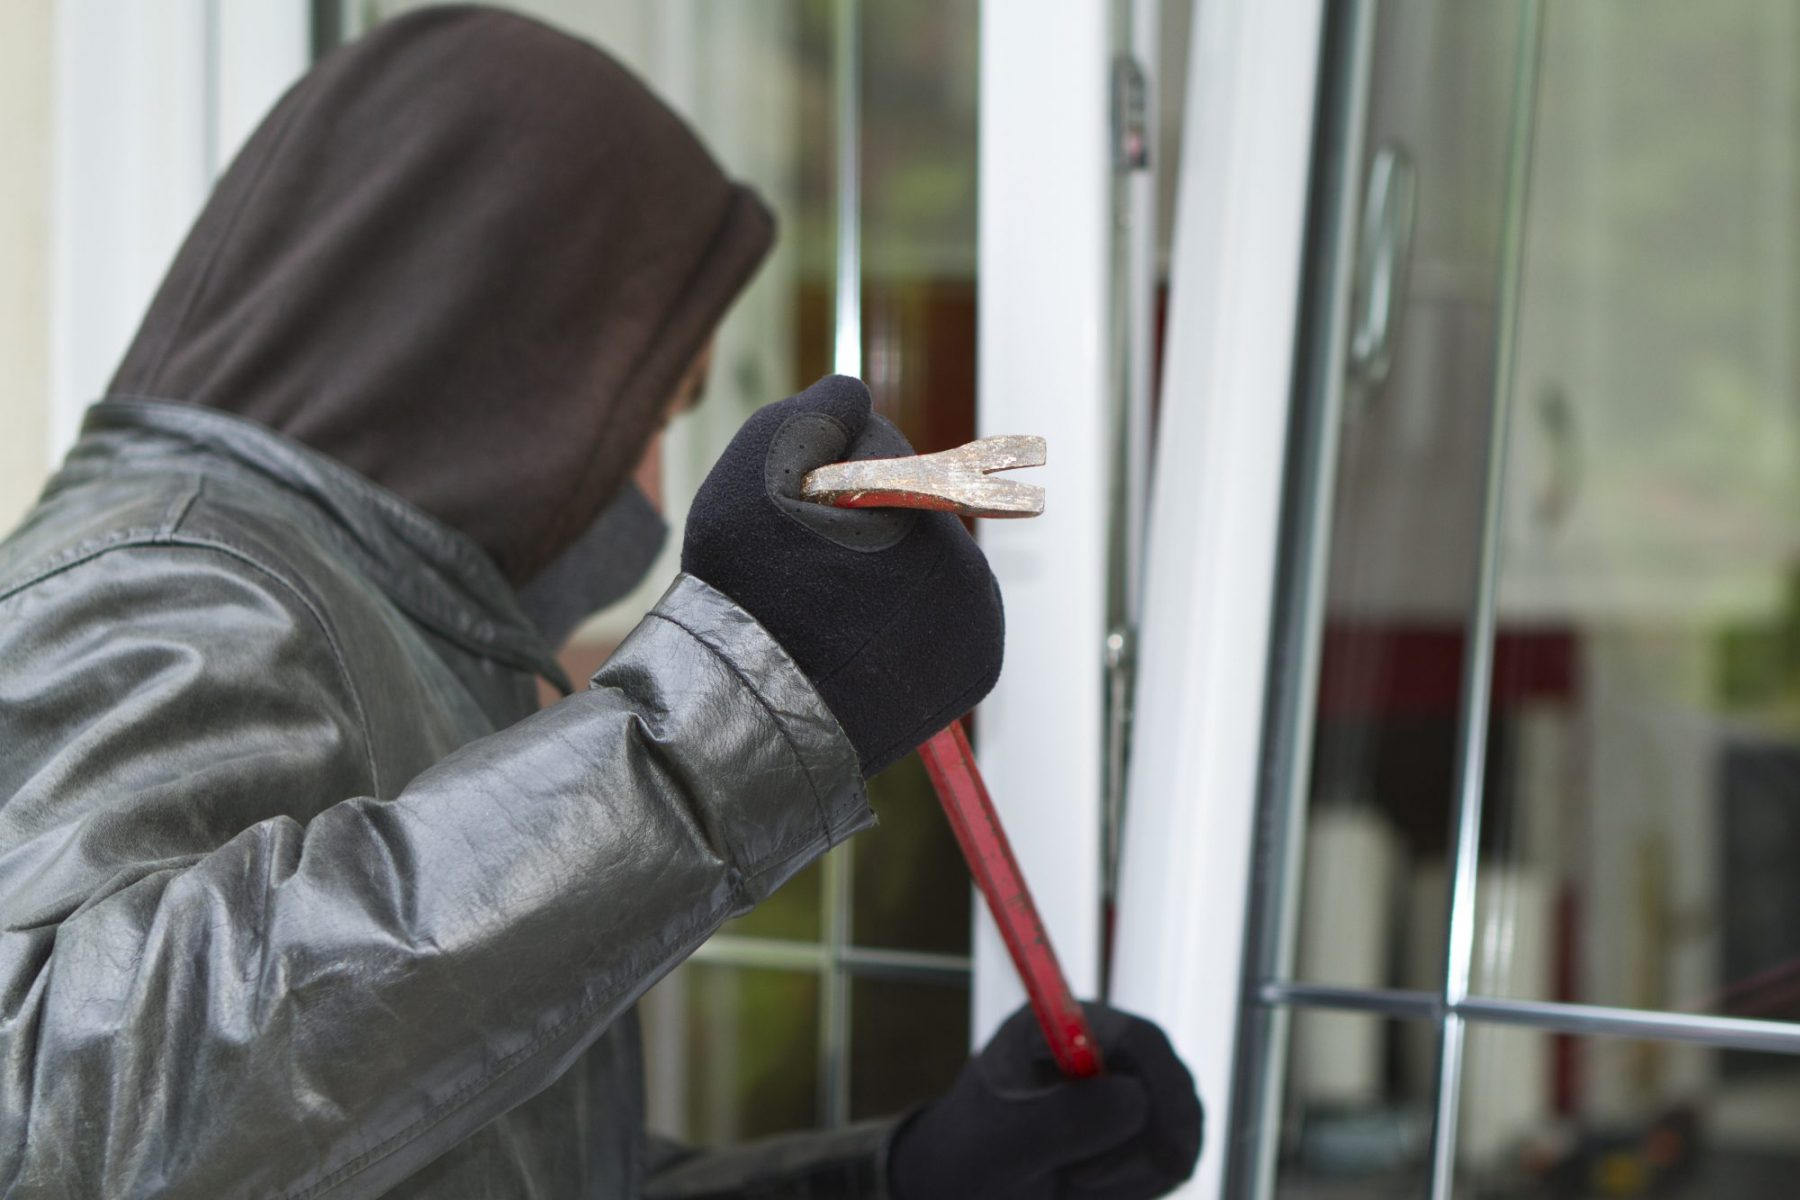 Man trying to break into a home with crowbar, if arrested on a breaking and entering charge meet with our Grand Rapids Criminal Defense Law Office.